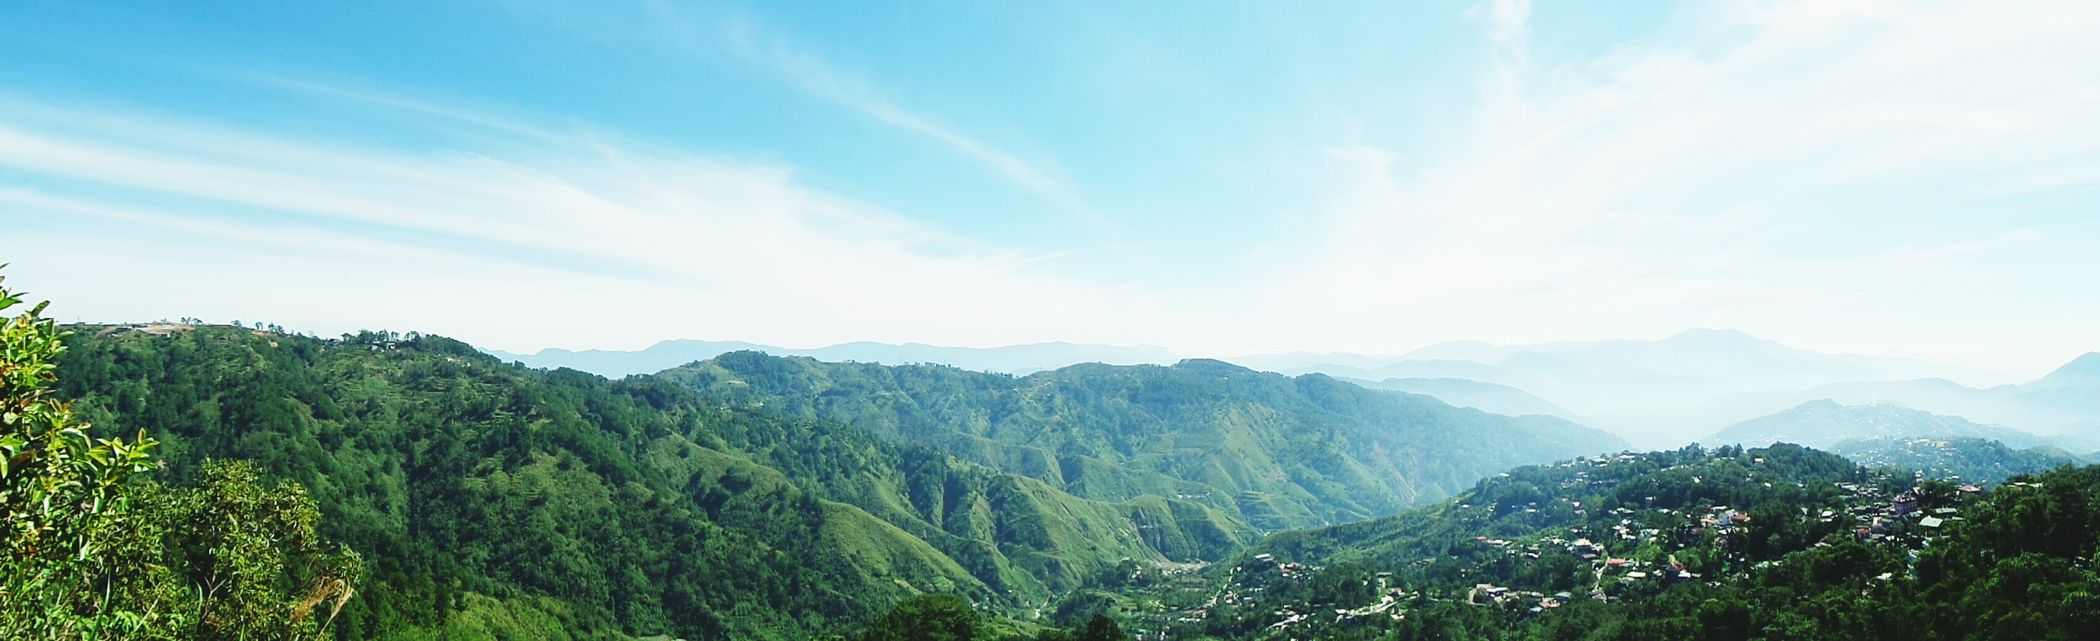 Mines View Park in Baguio City Philiplines Eyeem Philippines Mountains Capture The Moment From My Point Of View Fog Blue Wave Rhenella